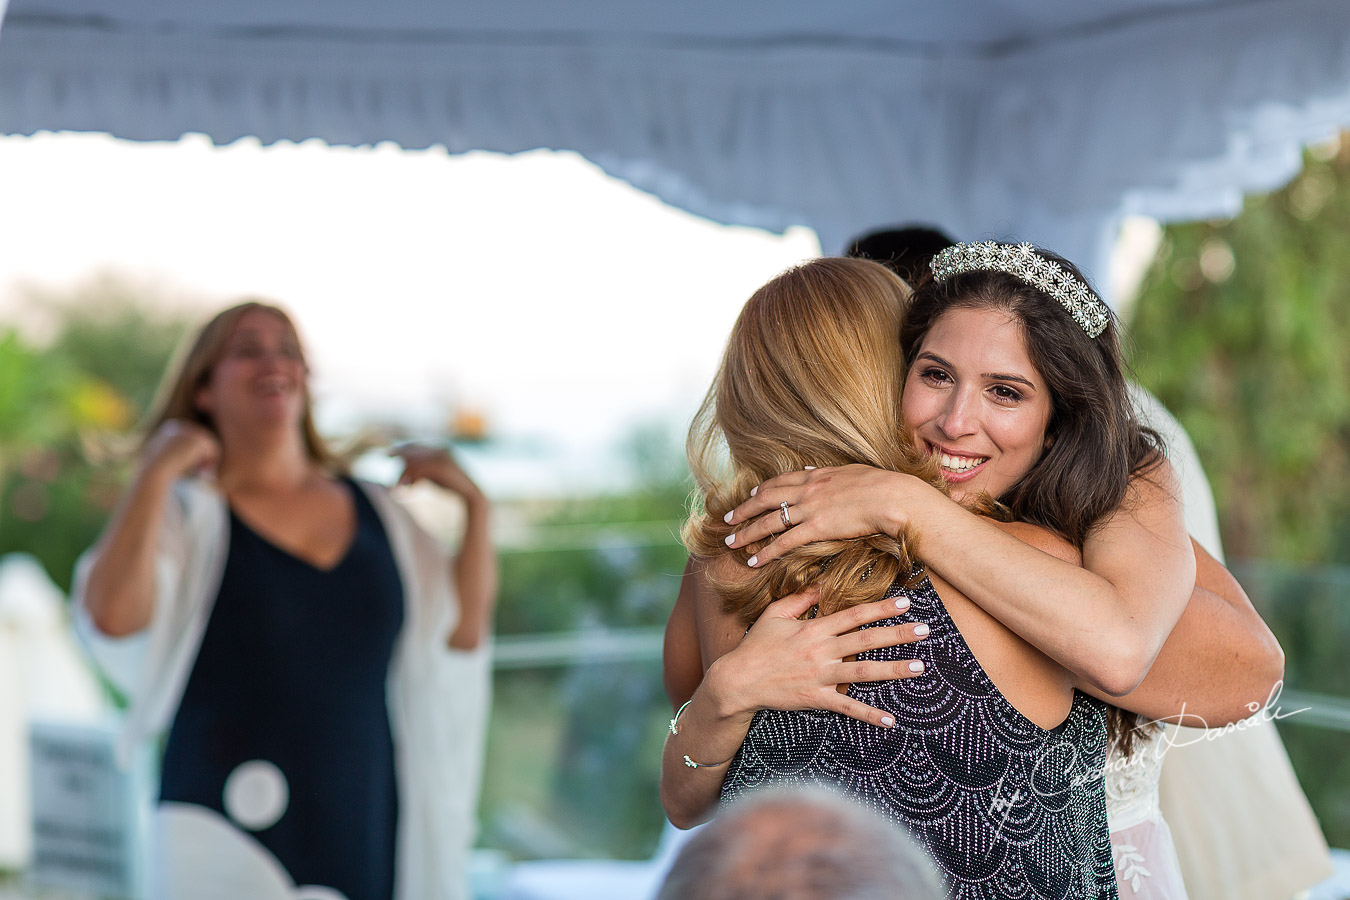 Emotional Wedding At Royal Apollonia Hotel. Photography by Cristian Dascalu.